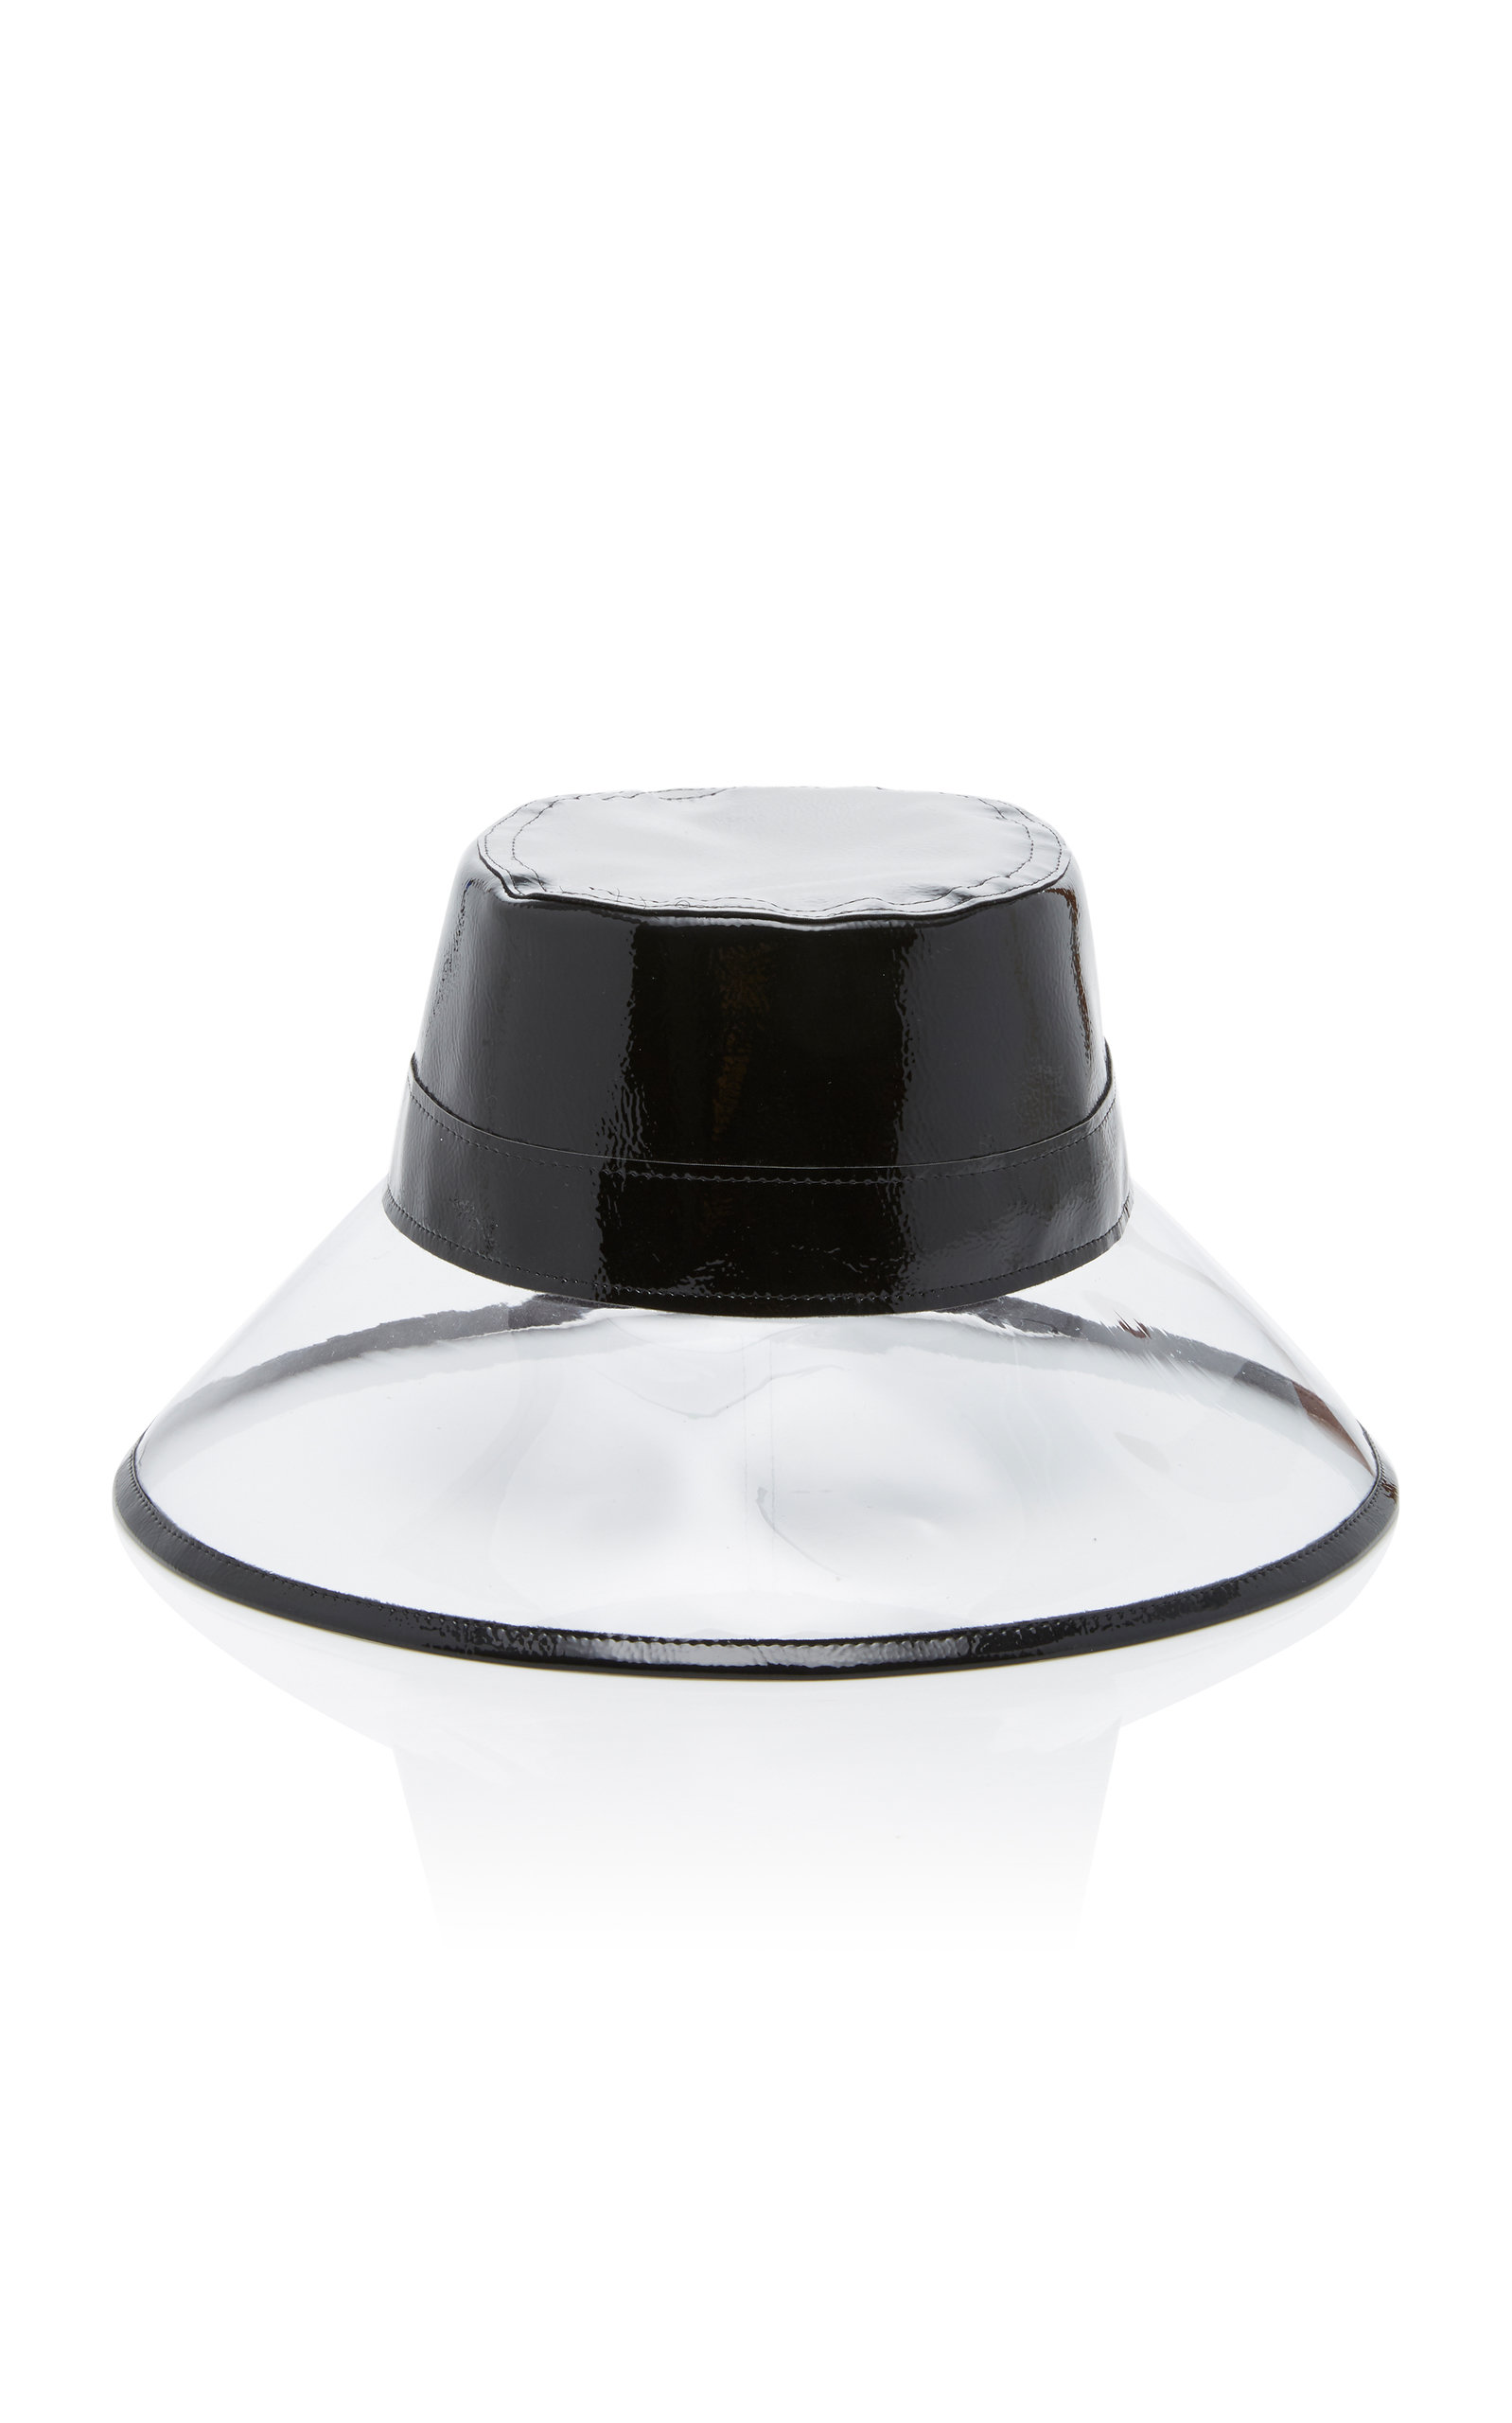 ee2457cc0f1d6 Eric JavitsGo-Go Patent Leather and PVC Bucket Hat. CLOSE. Loading